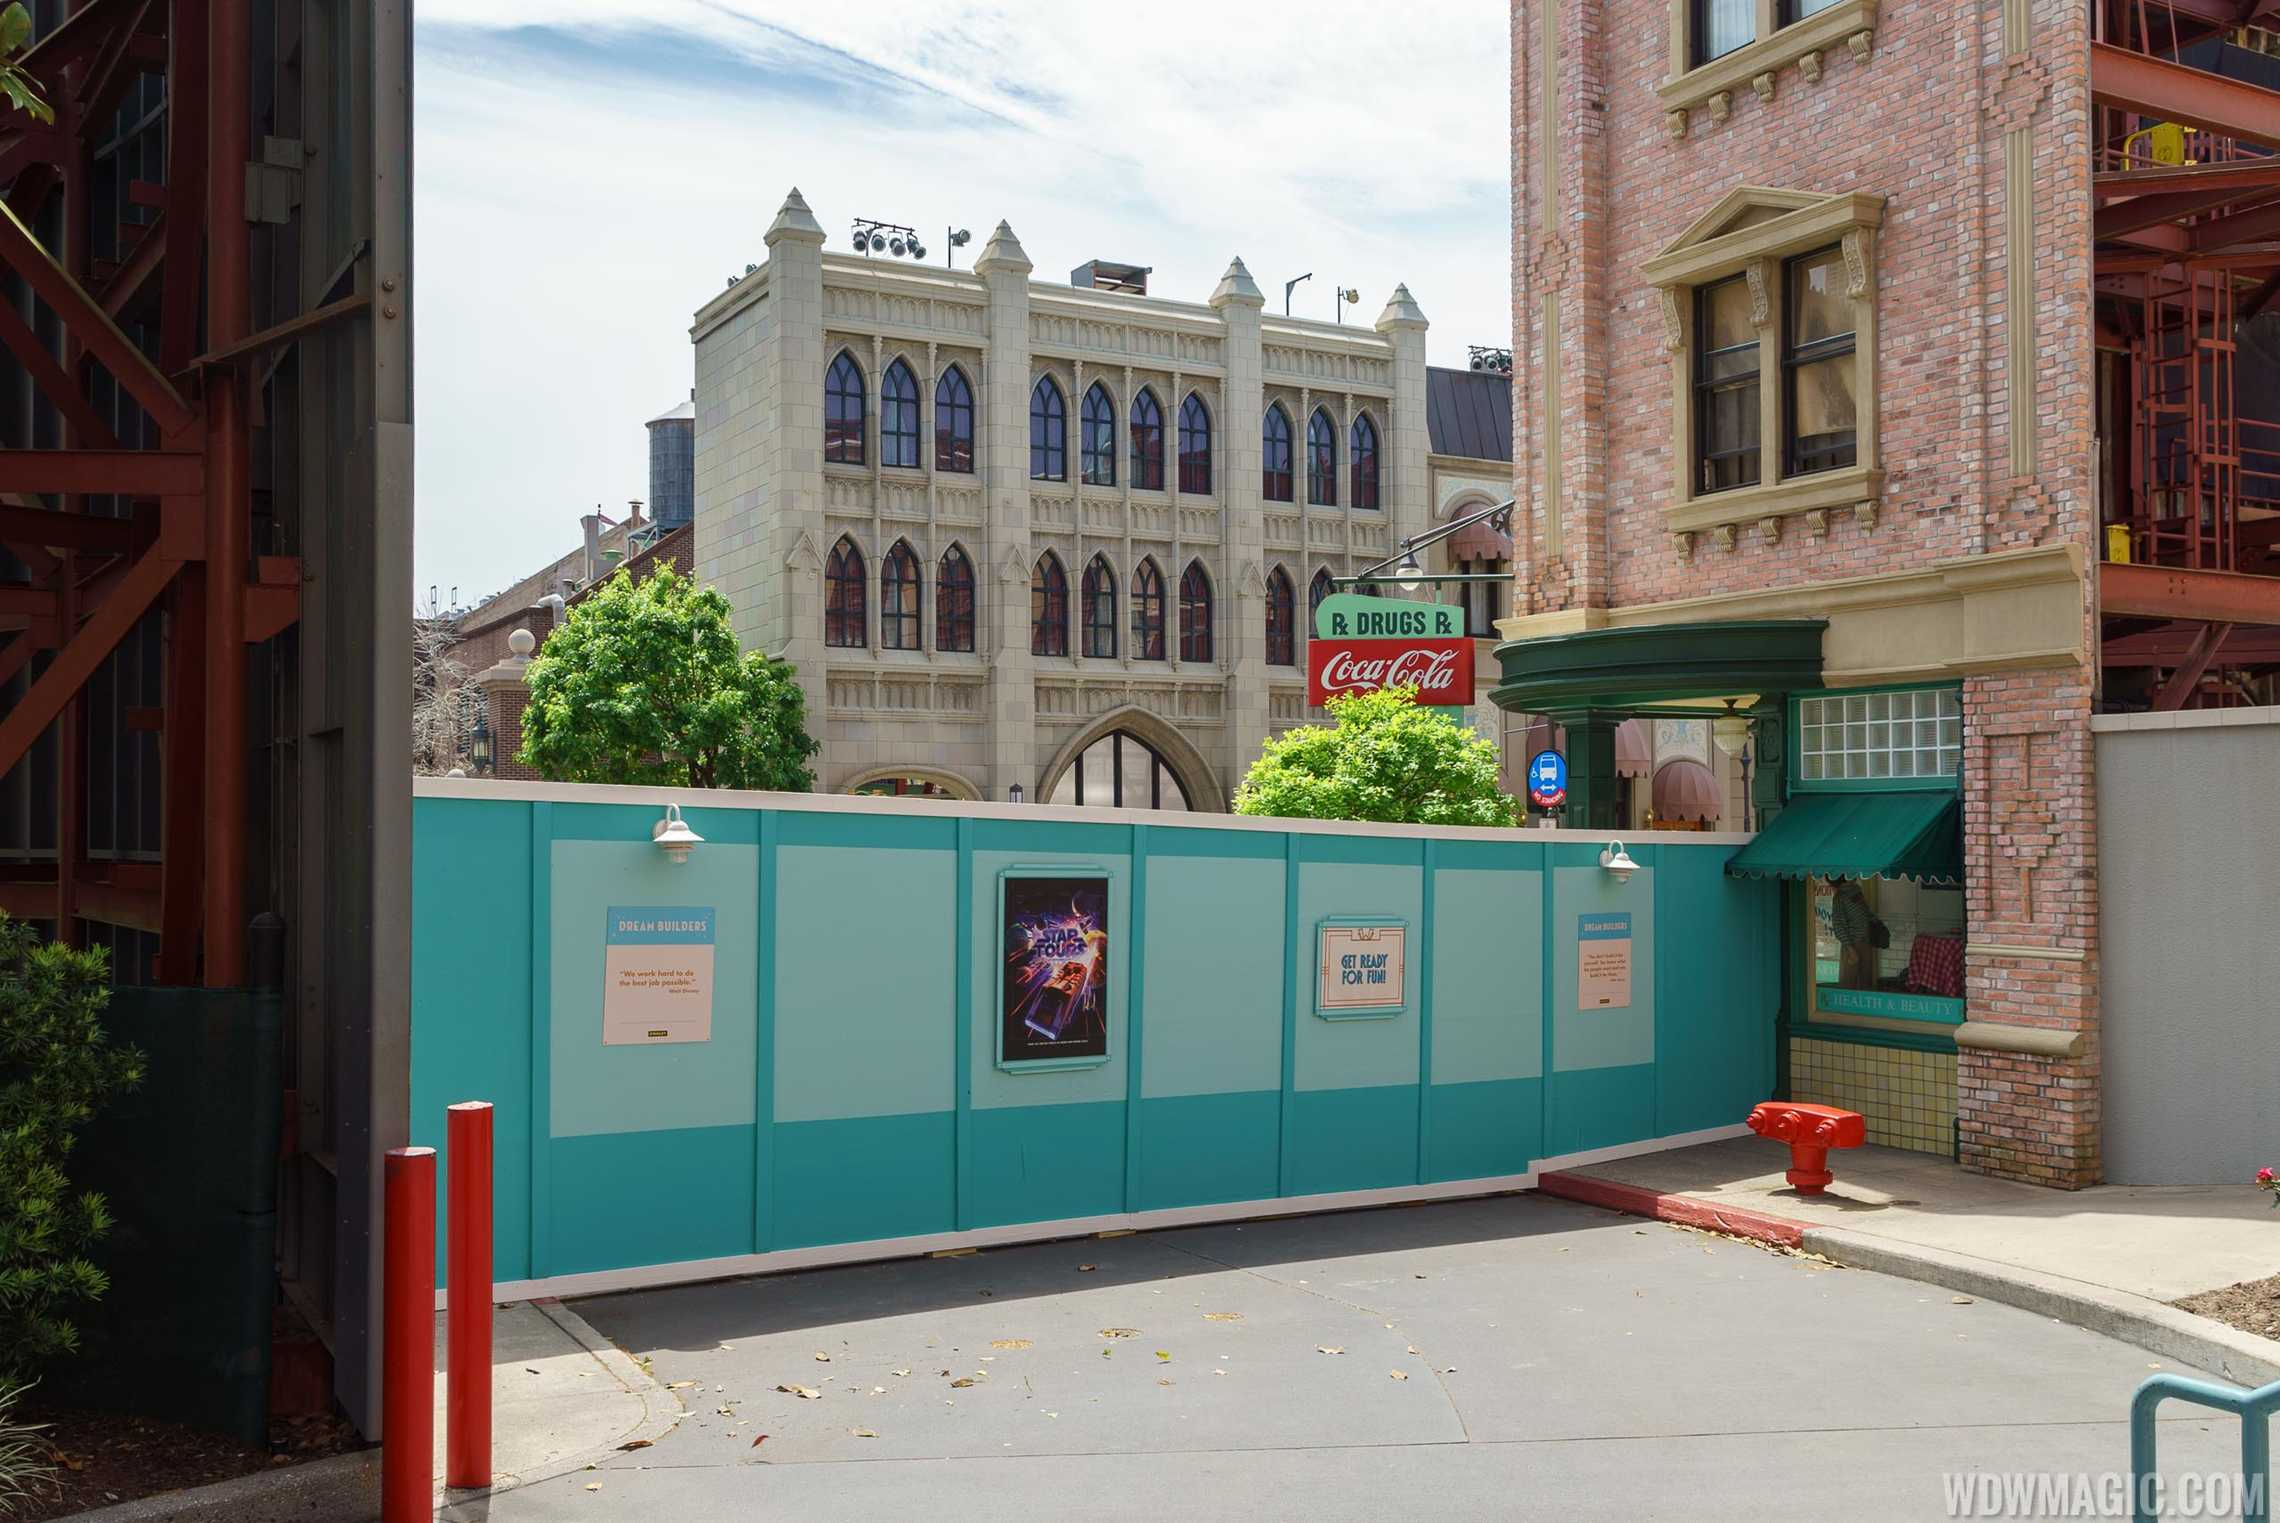 The wall as of Sunday, but now features Star Wars Land concept art